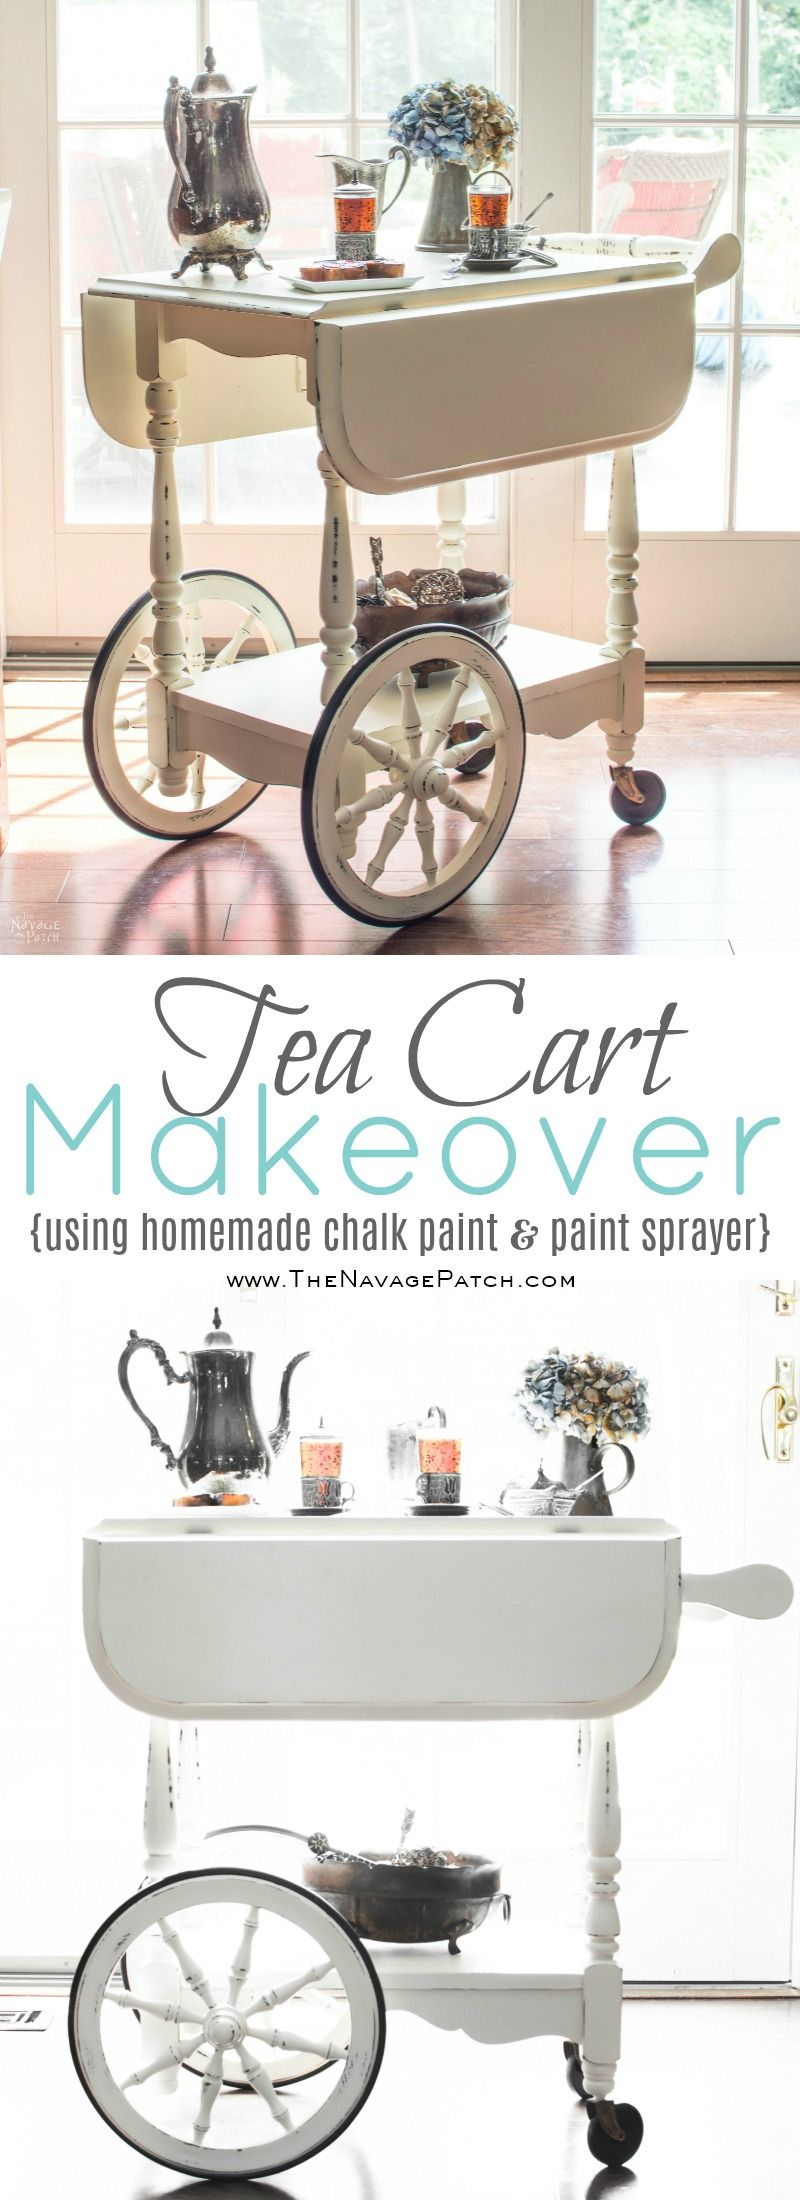 ea Cart Makeover | DIY furniture makeover | DIY painted furniture with homemade chalk paint | DIY chalk paint | French country decorating | Farmhouse style furniture | Annie Sloan Old White color | How to use homemade chalk paint with paint sprayer | DIY chalk paint recipe | Wagner paint sprayer | Before & After | TheNavagePatch.com